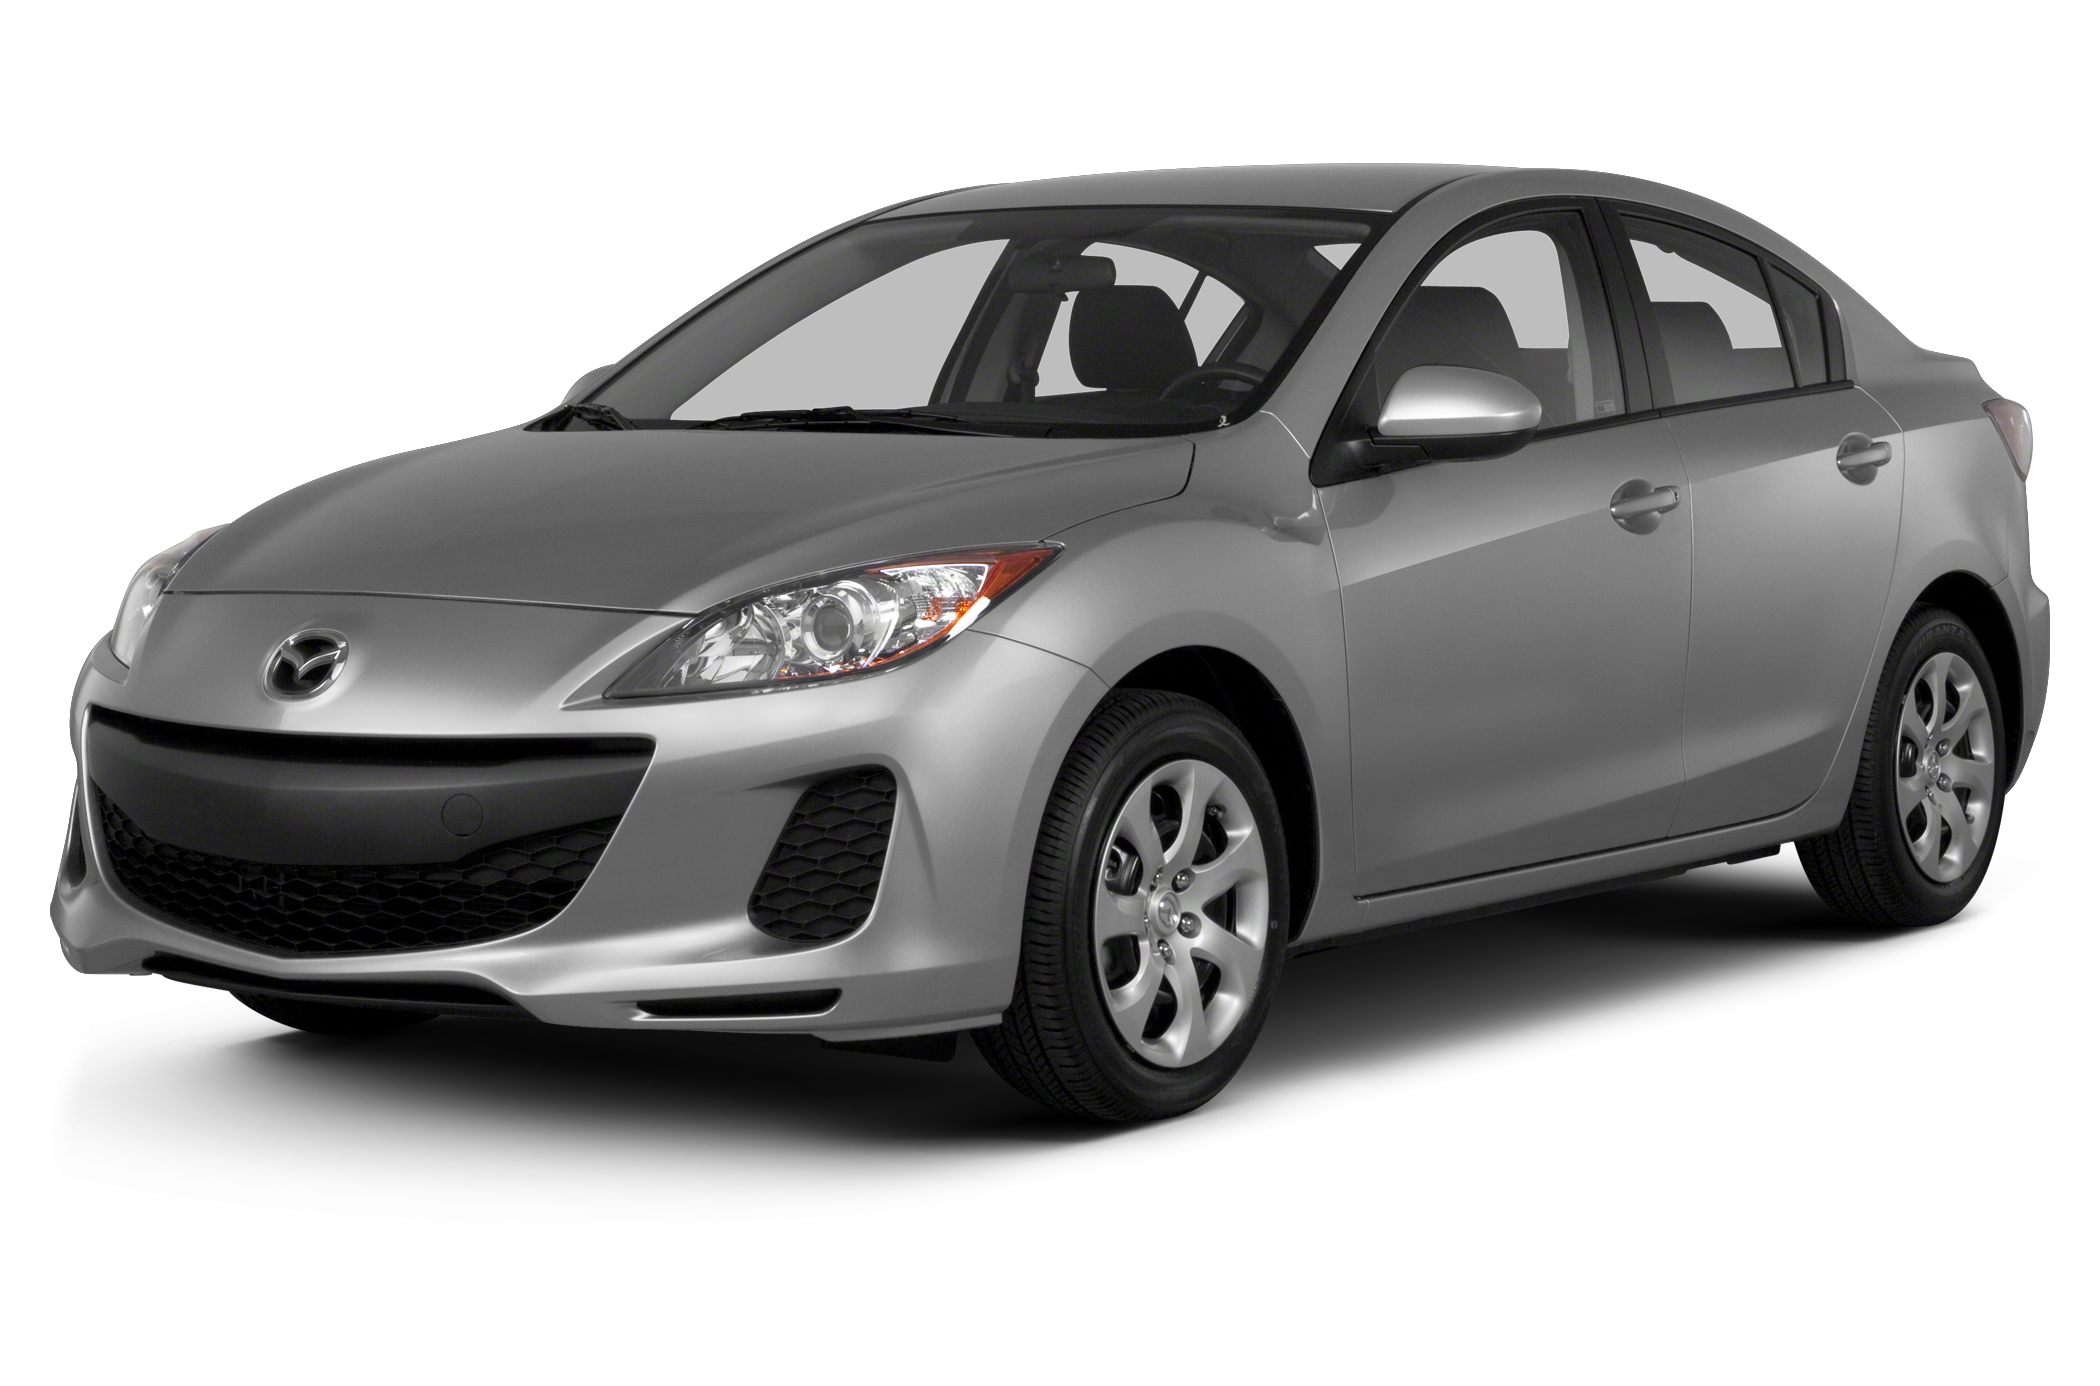 2013 Mazda Mazda3 I Sport Sedan for sale in Philadelphia for $11,998 with 51,225 miles.